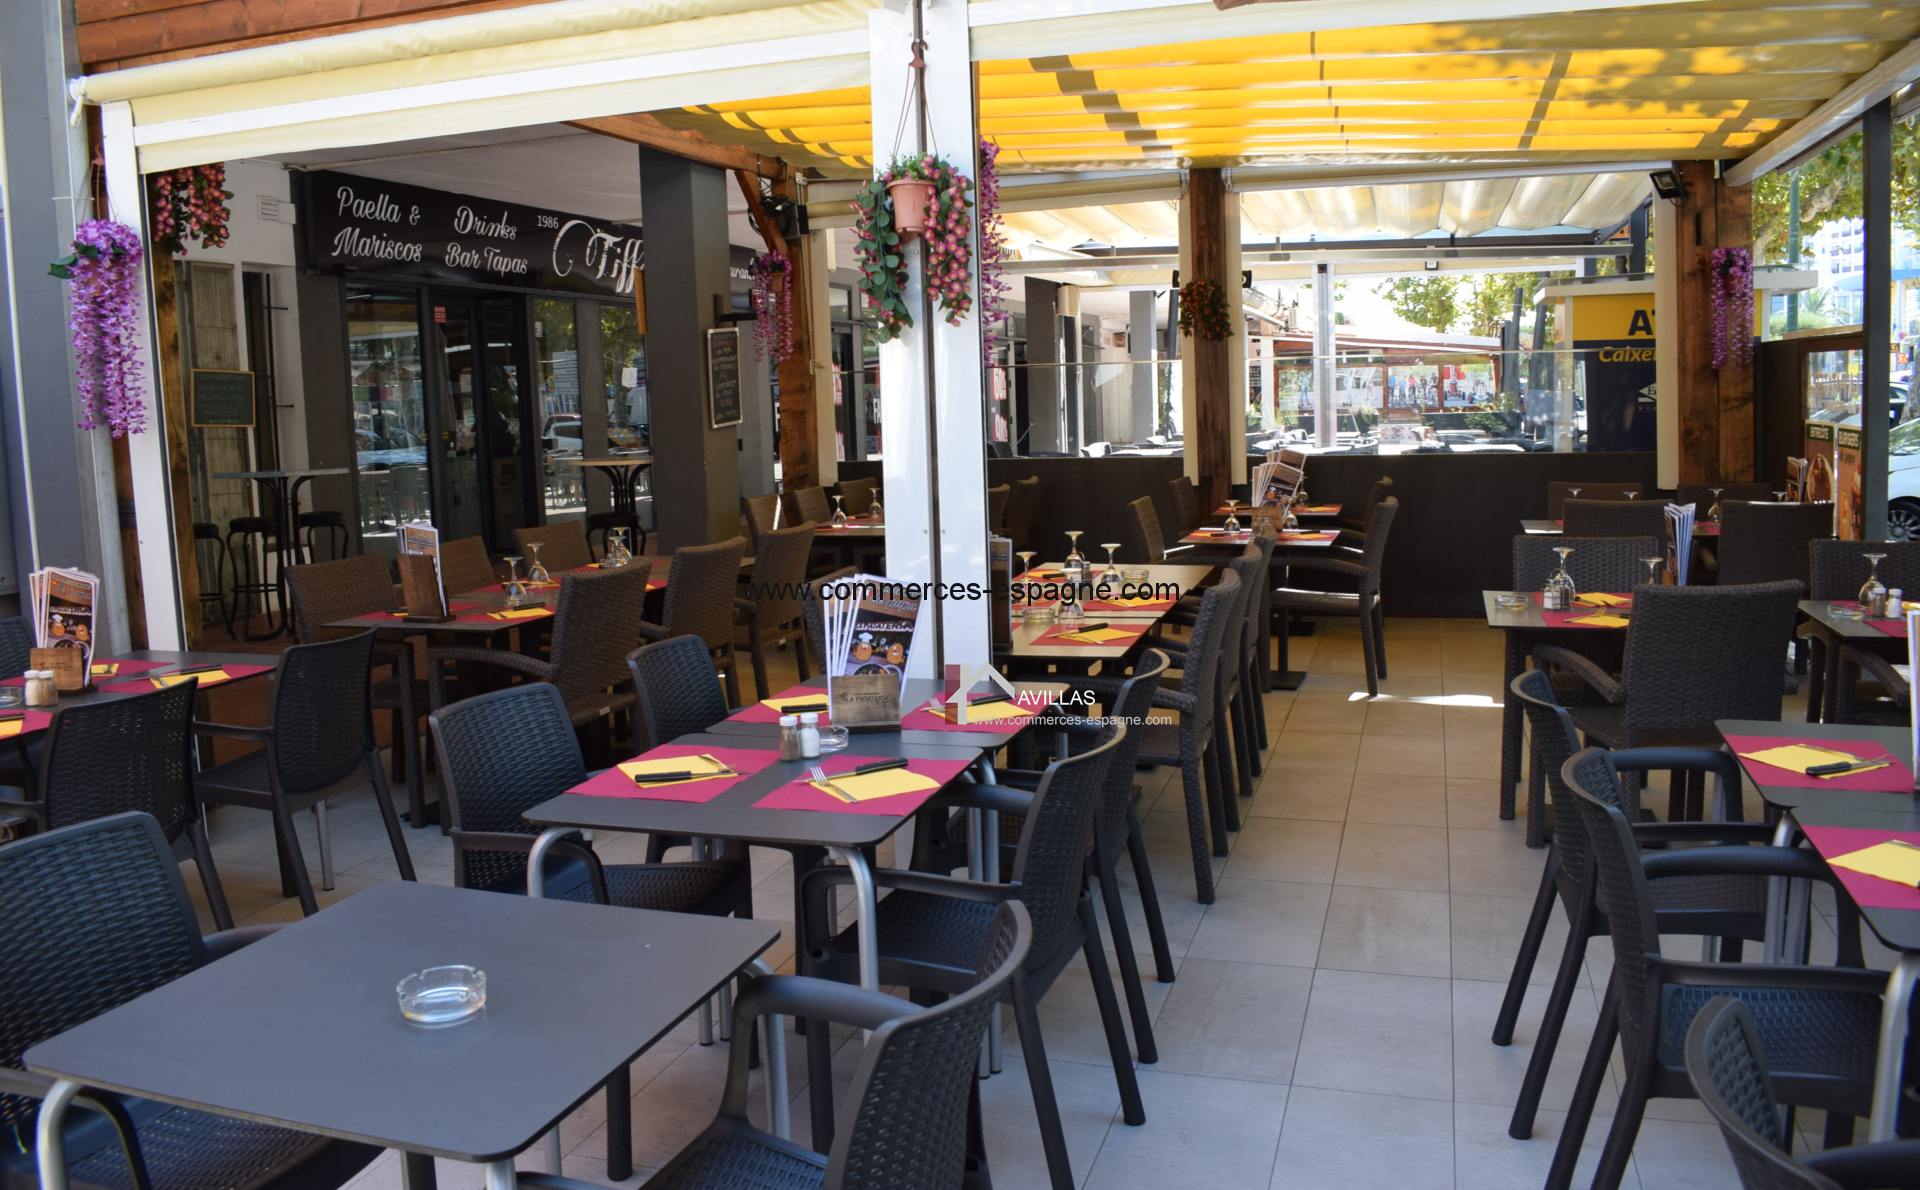 Bar-Restaurant, Empuriabrava, Costa brava